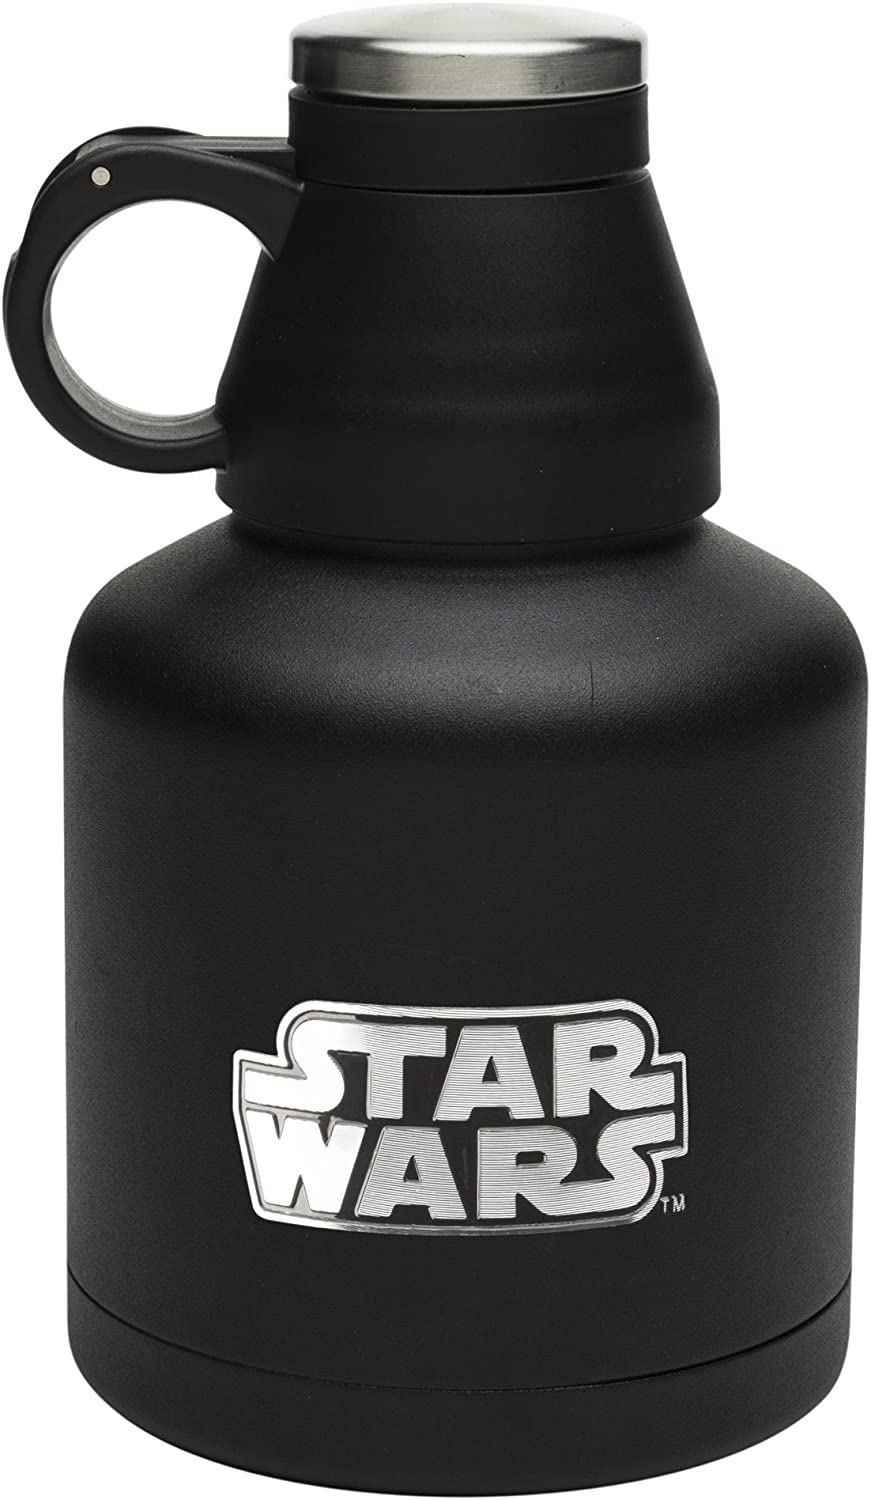 Zak Designs Classic Star Wars 32 oz. Double-Wall Vacuum Insulated Growler, Star Wars